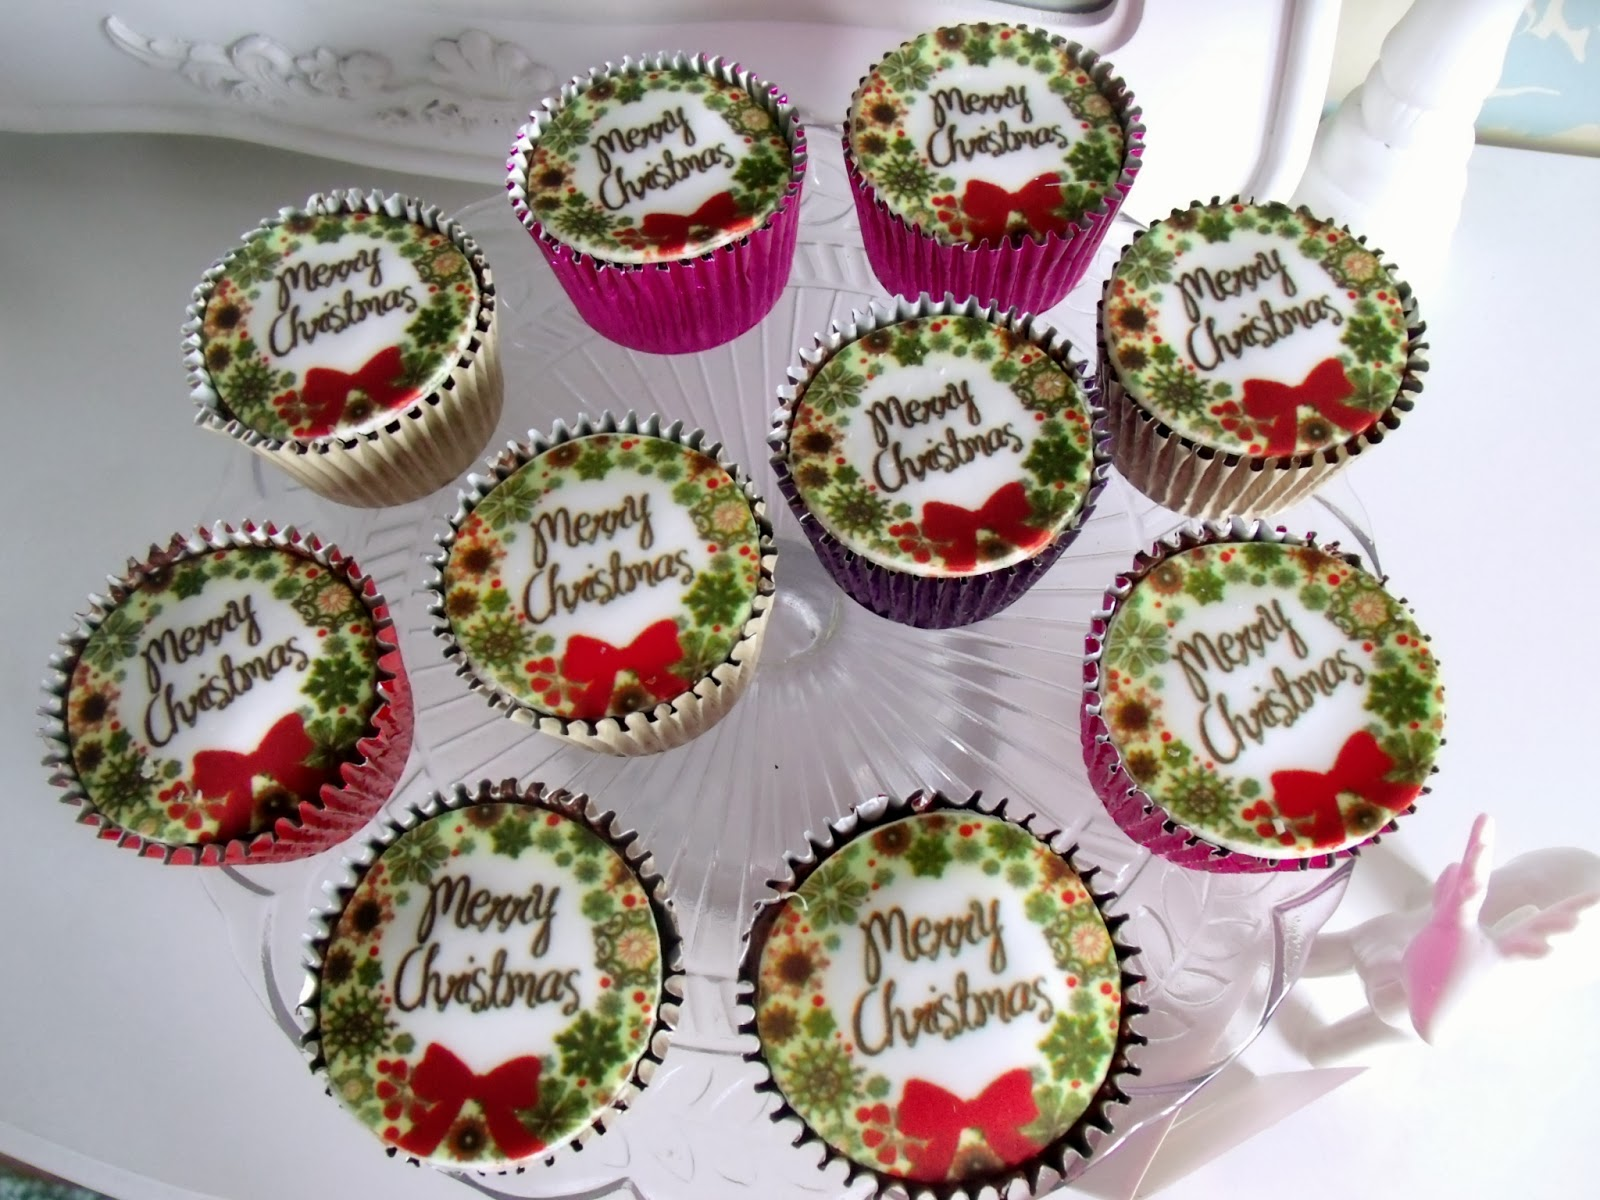 Family christmas treats victorias vintage blog as a kind of family treat if youre not into baking yourself then a nice idea is to order some christmas cupcakes usually when i go round to visit solutioingenieria Choice Image